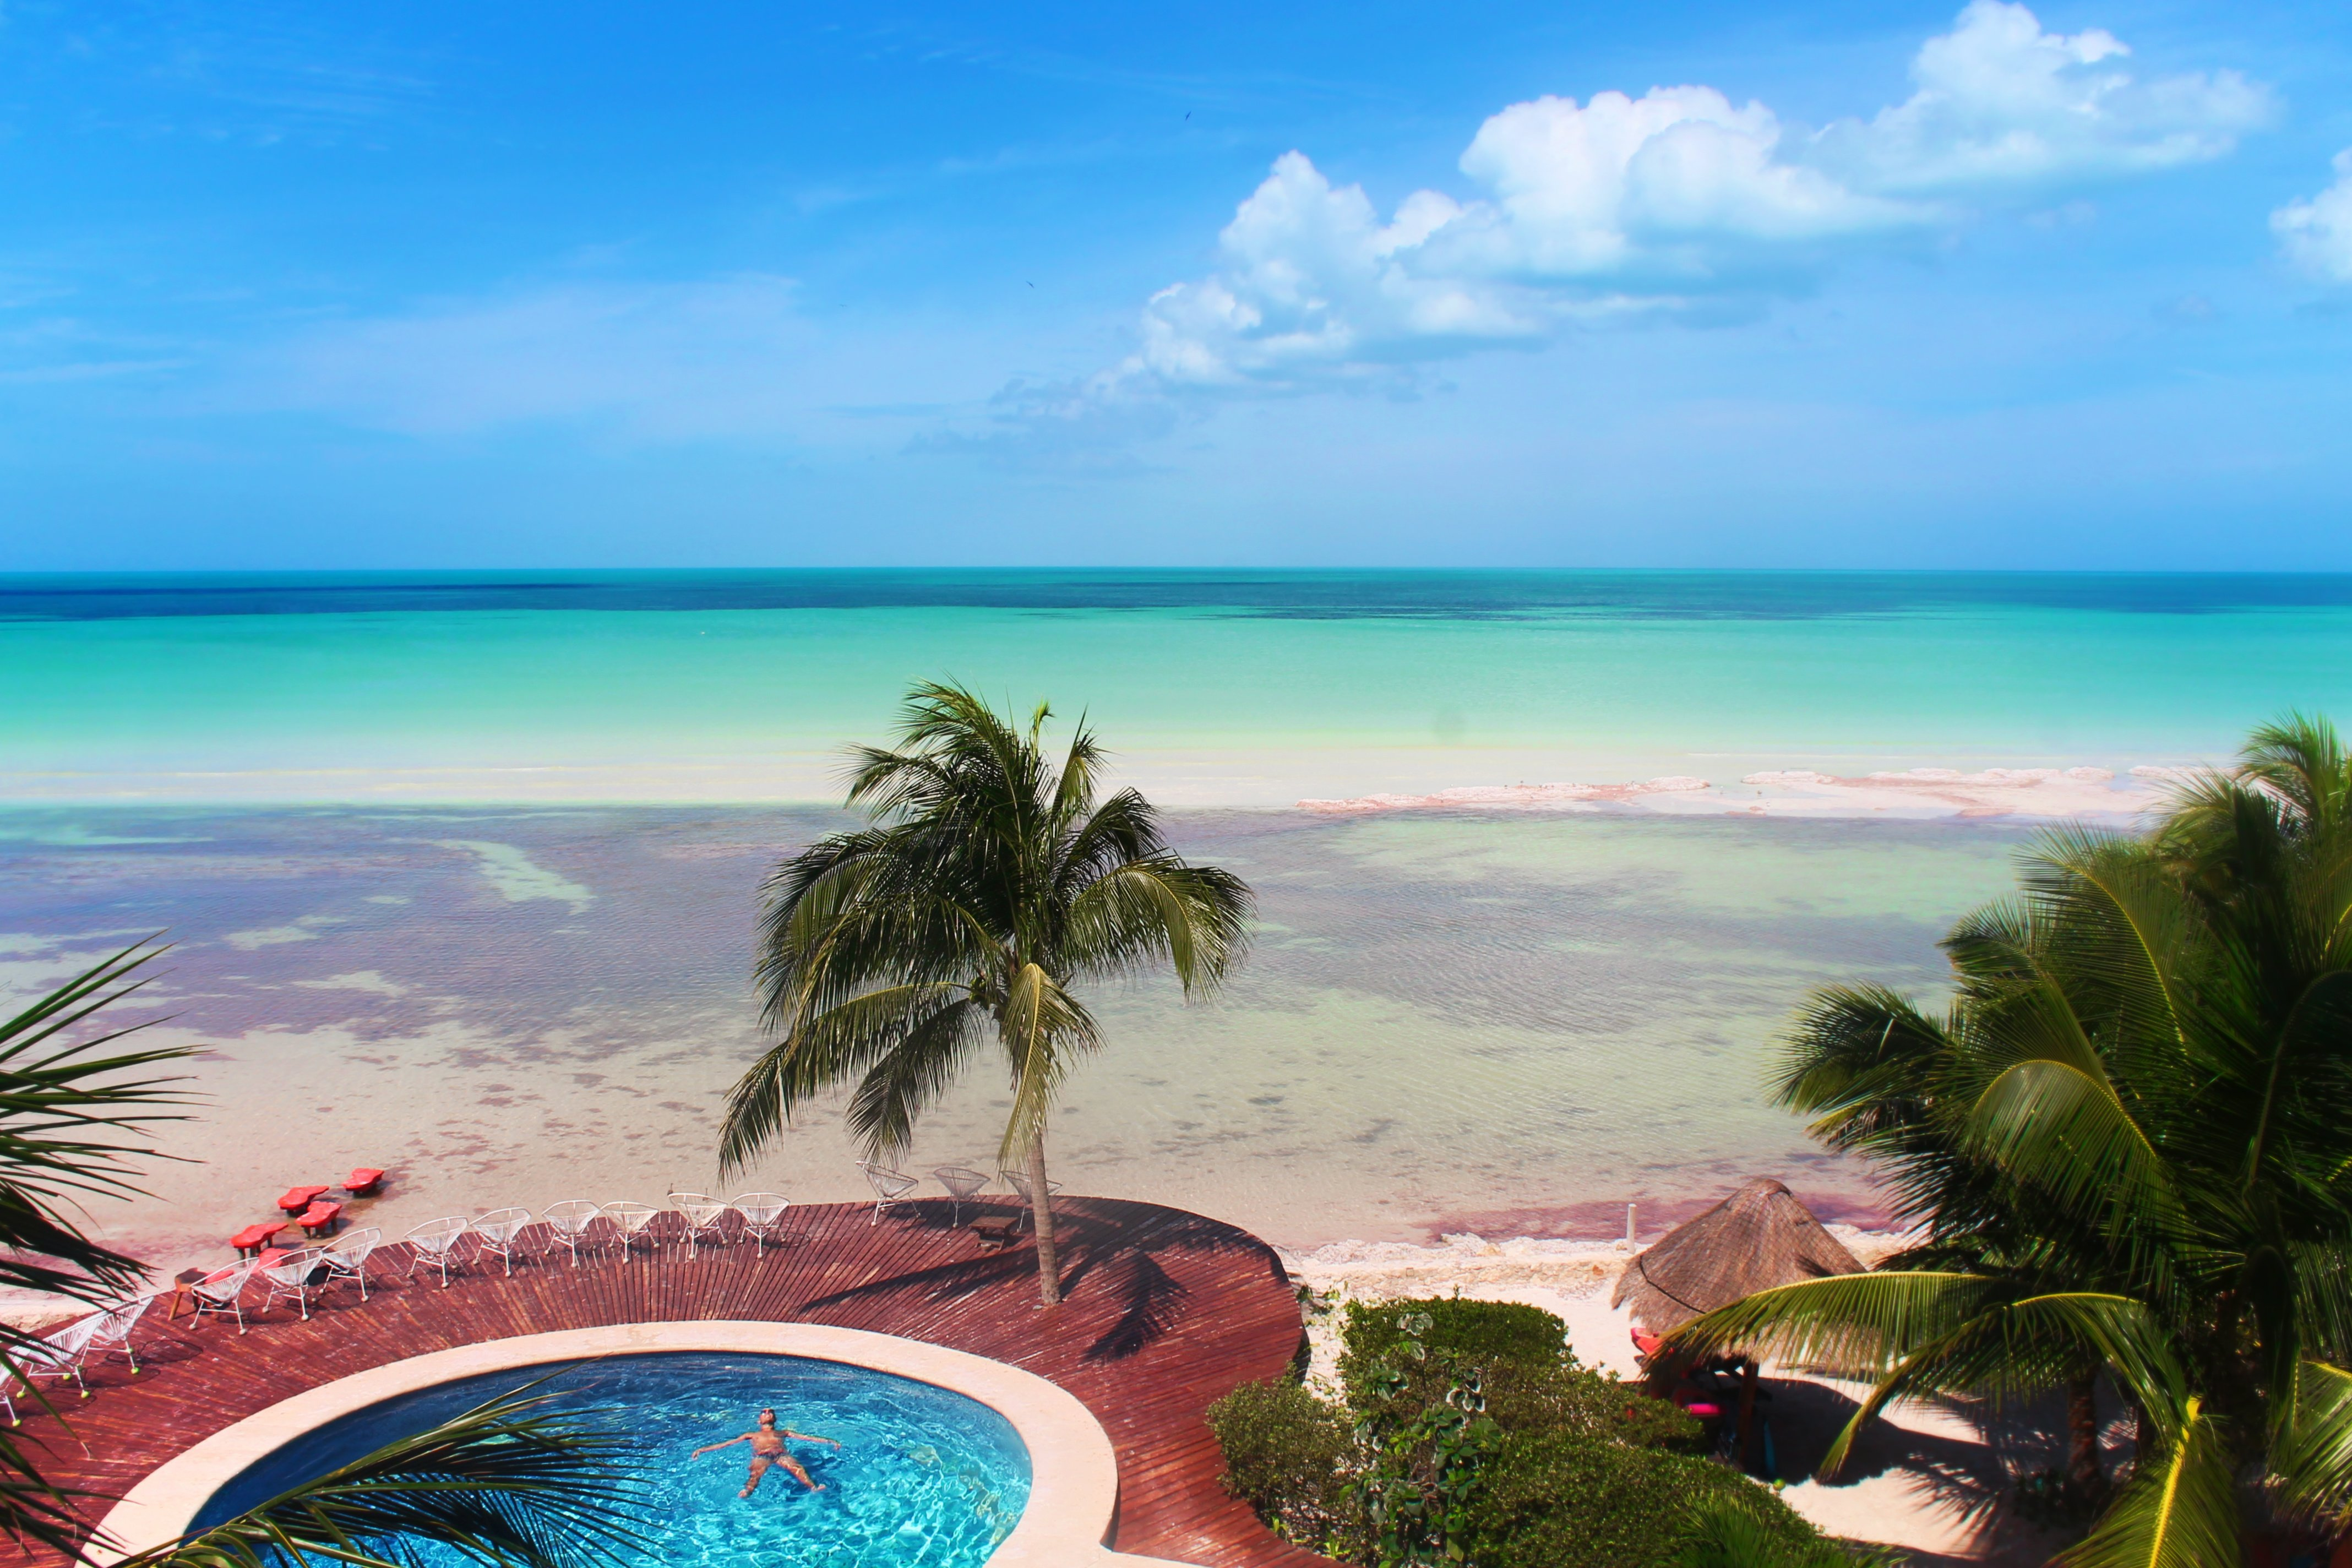 Trip to Isla Holbox: the last slice of mellow Caribbean